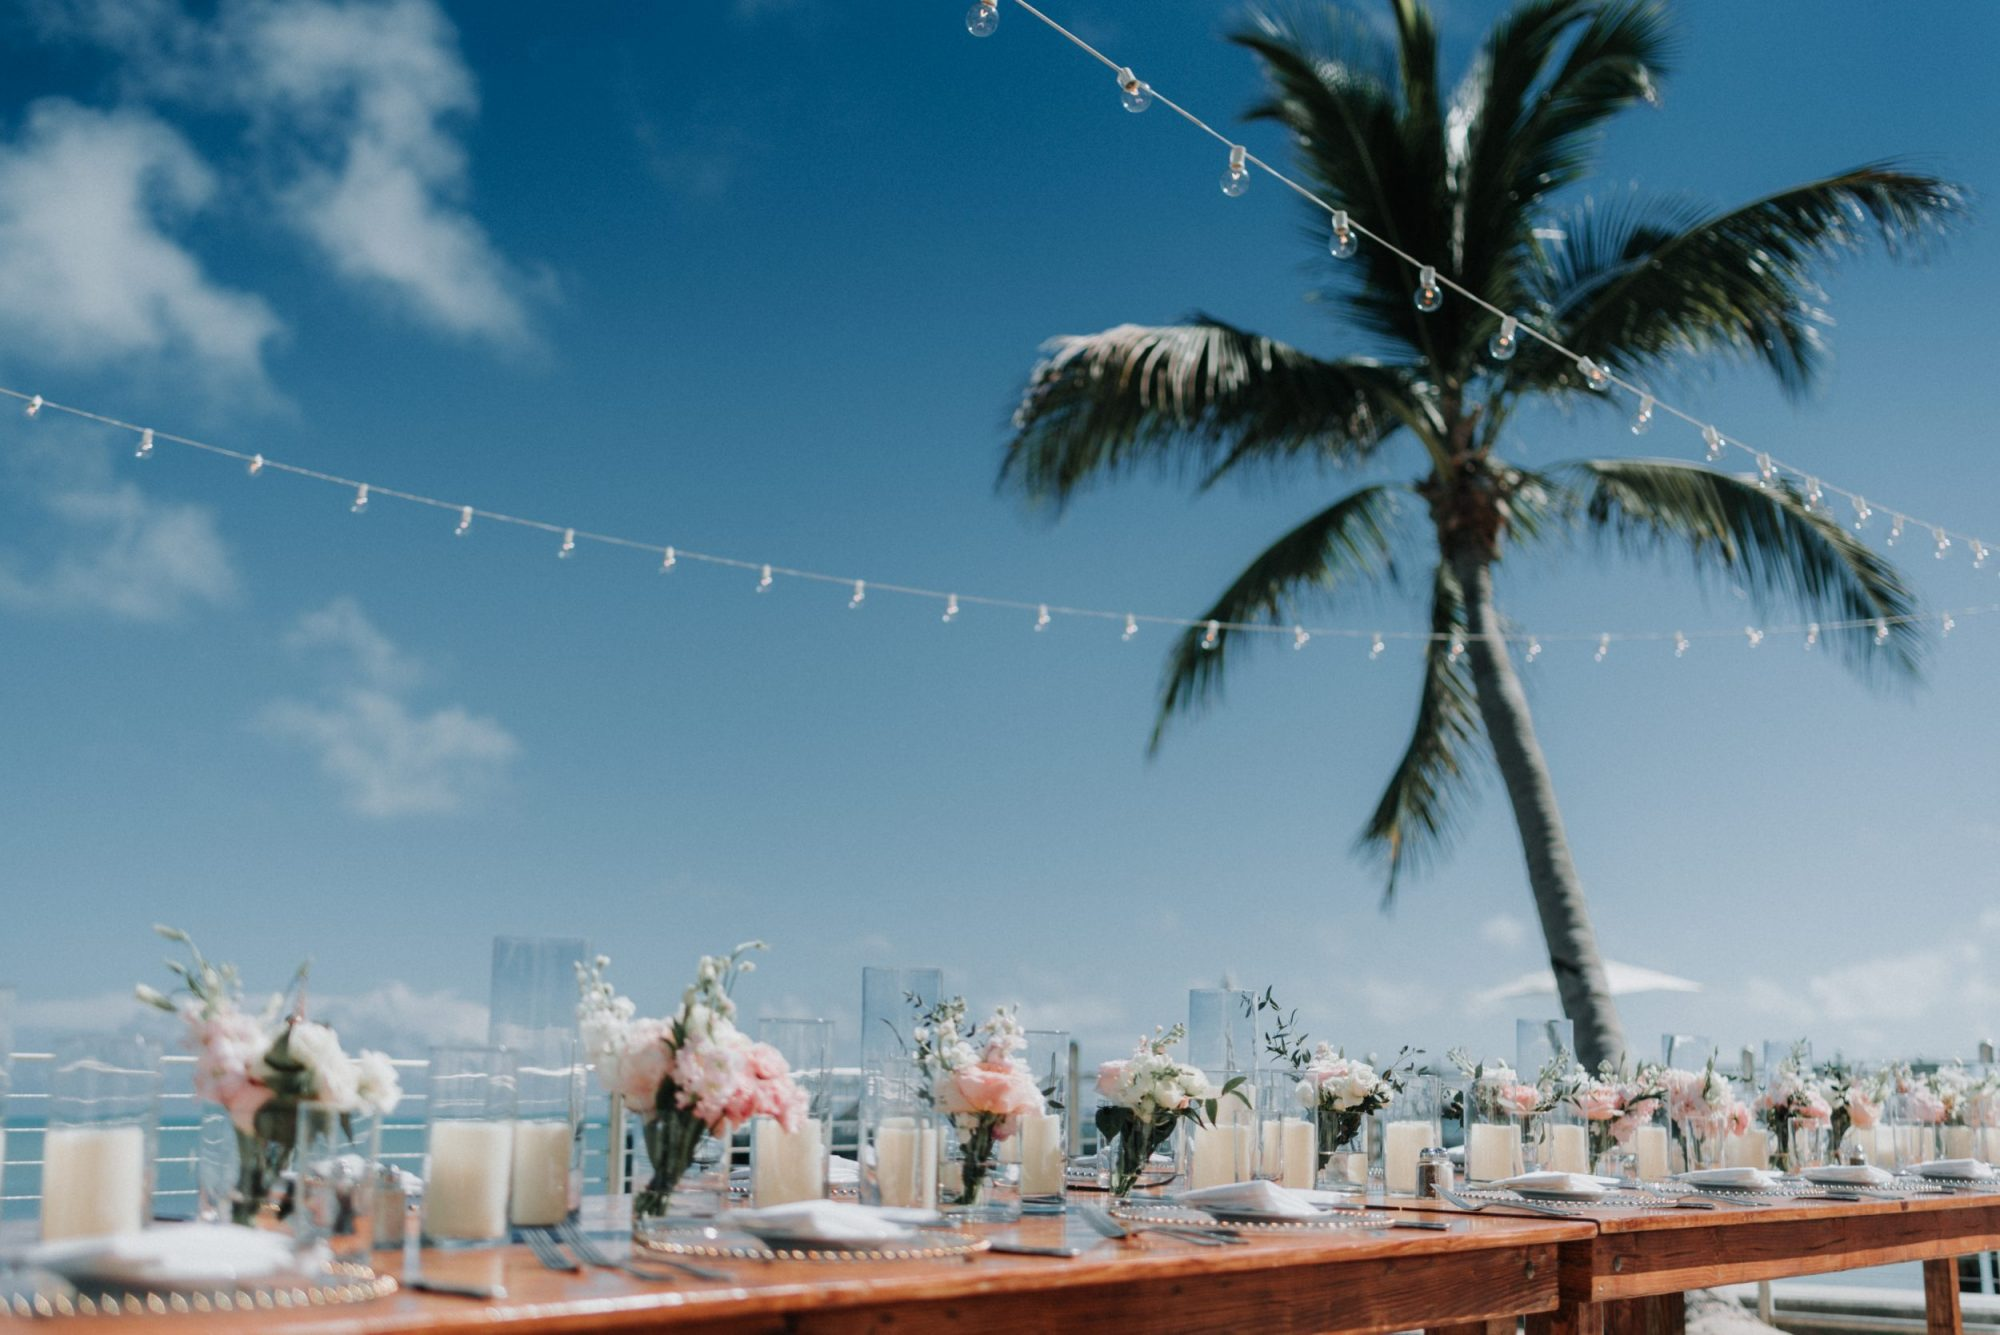 table settings for wedding at southernmost beach resort